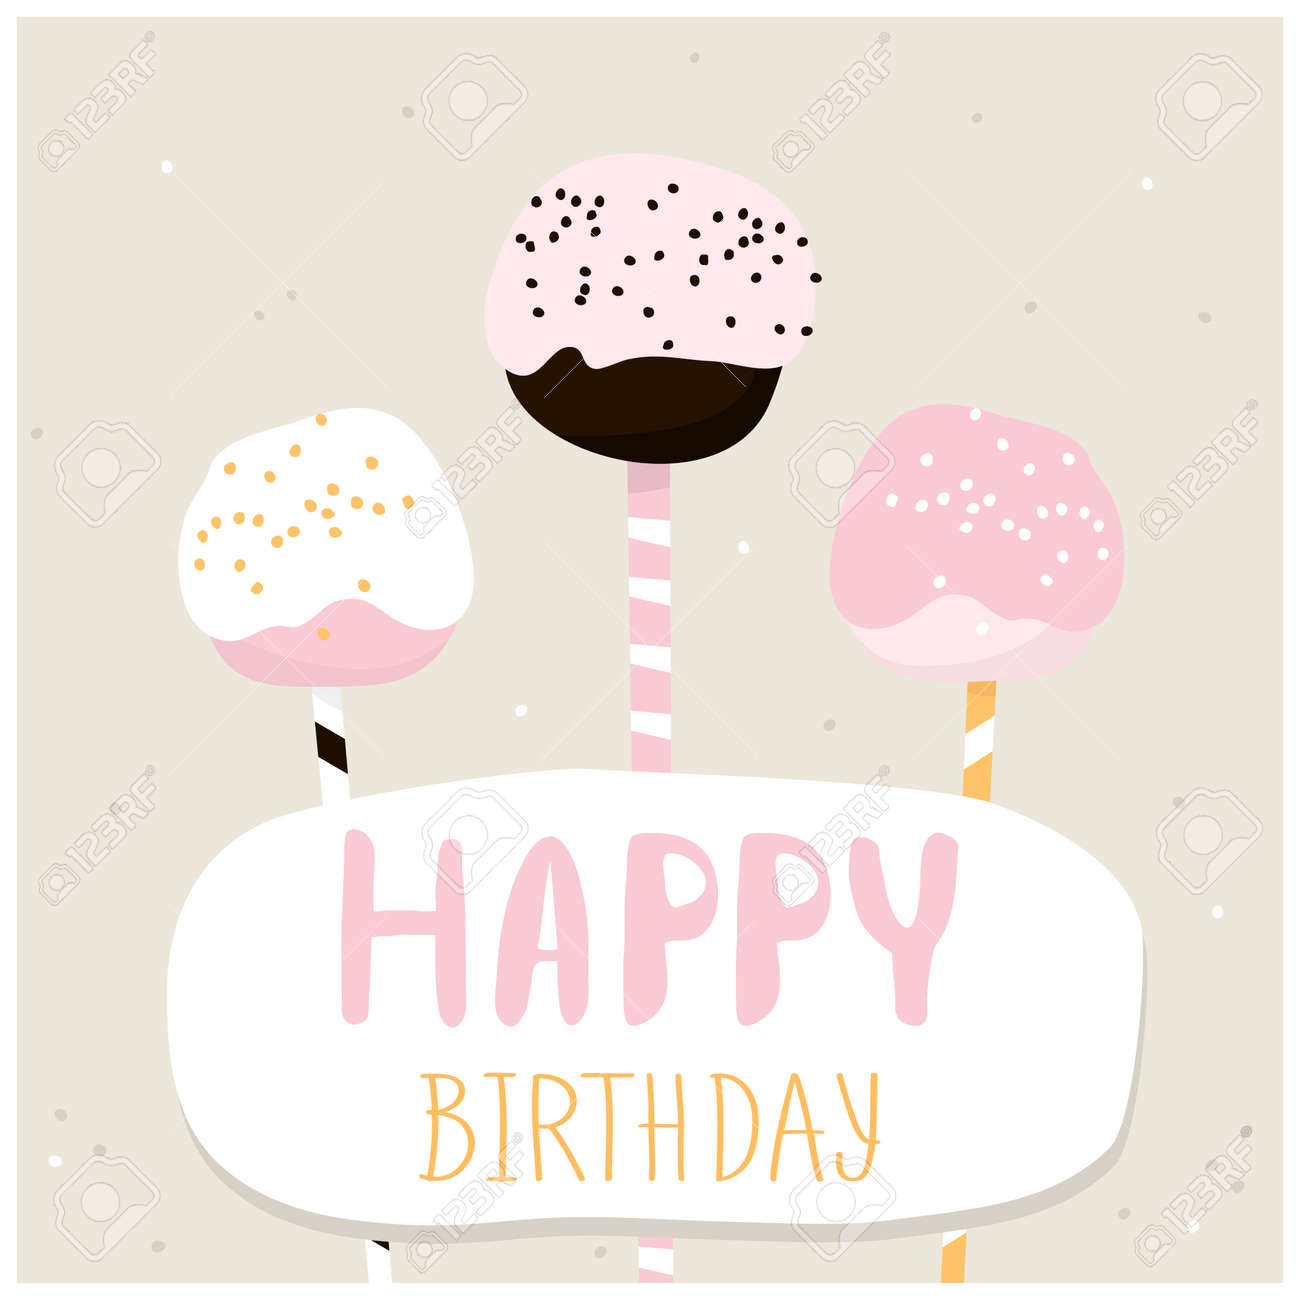 Cute cake pops with happy birthday wish greeting card template cute cake pops with happy birthday wish greeting card template creative happy birthday background kristyandbryce Images